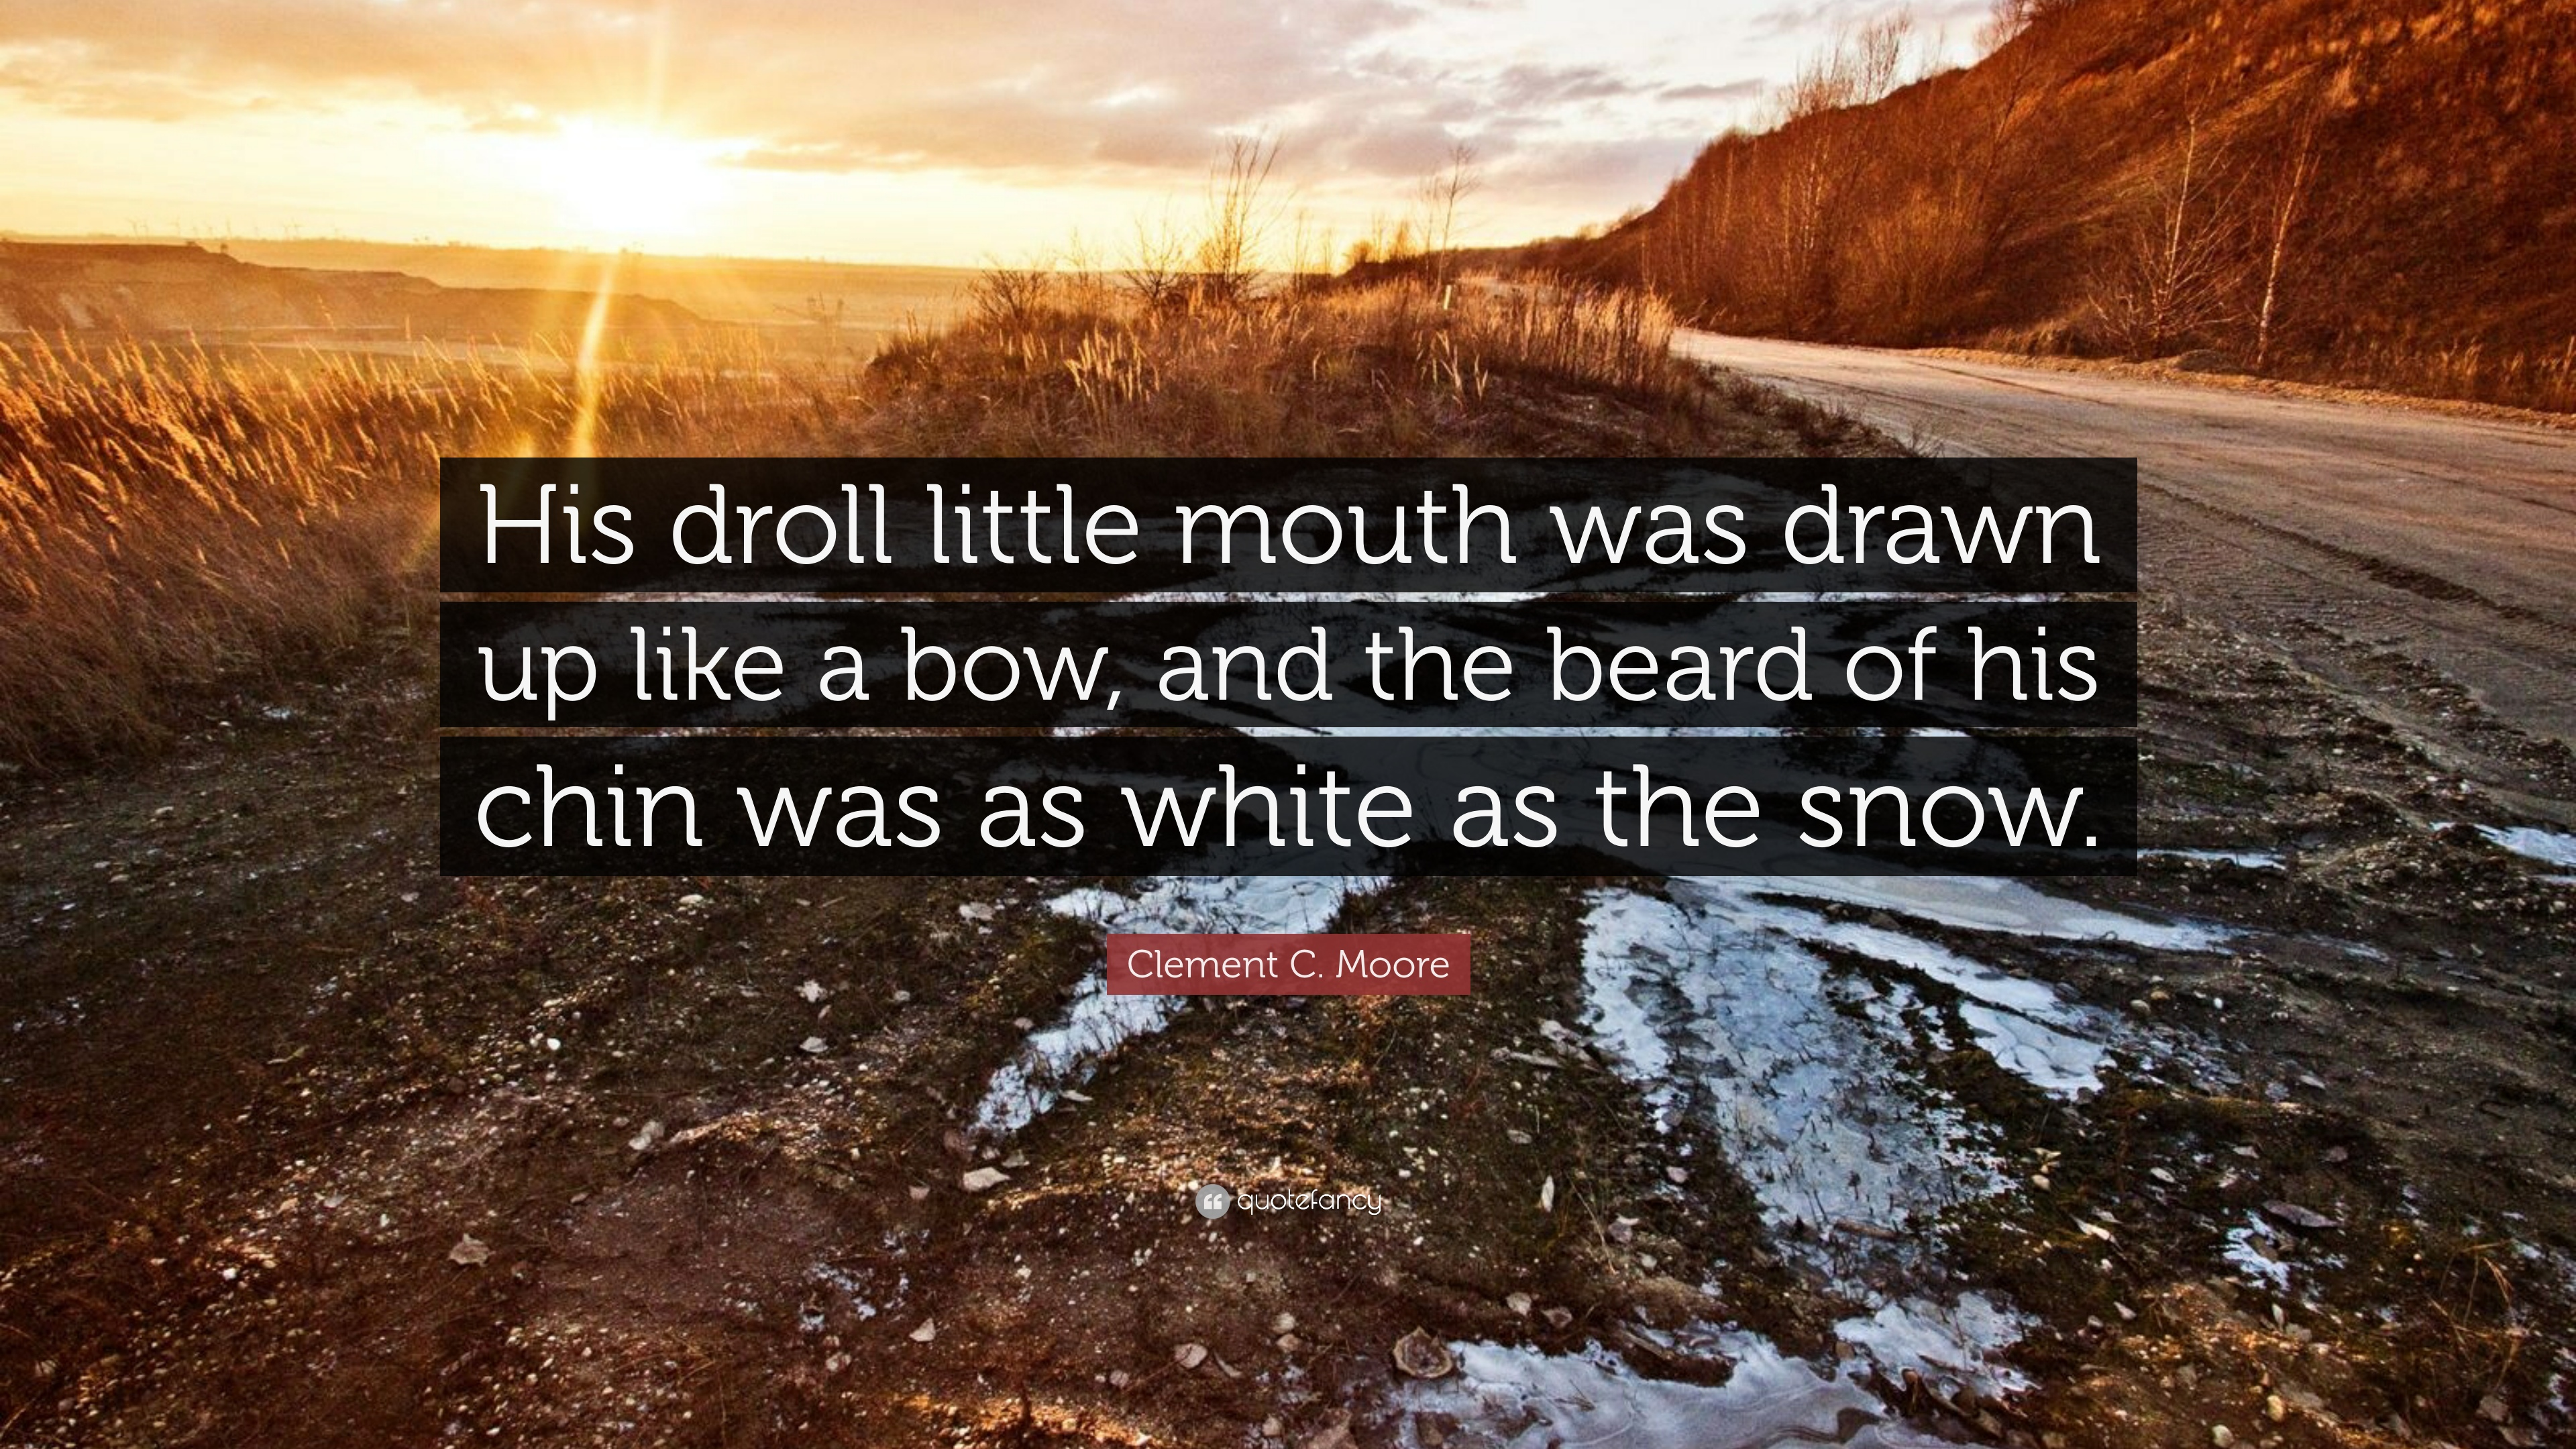 Drawn beard snow Clement Quote: C like was